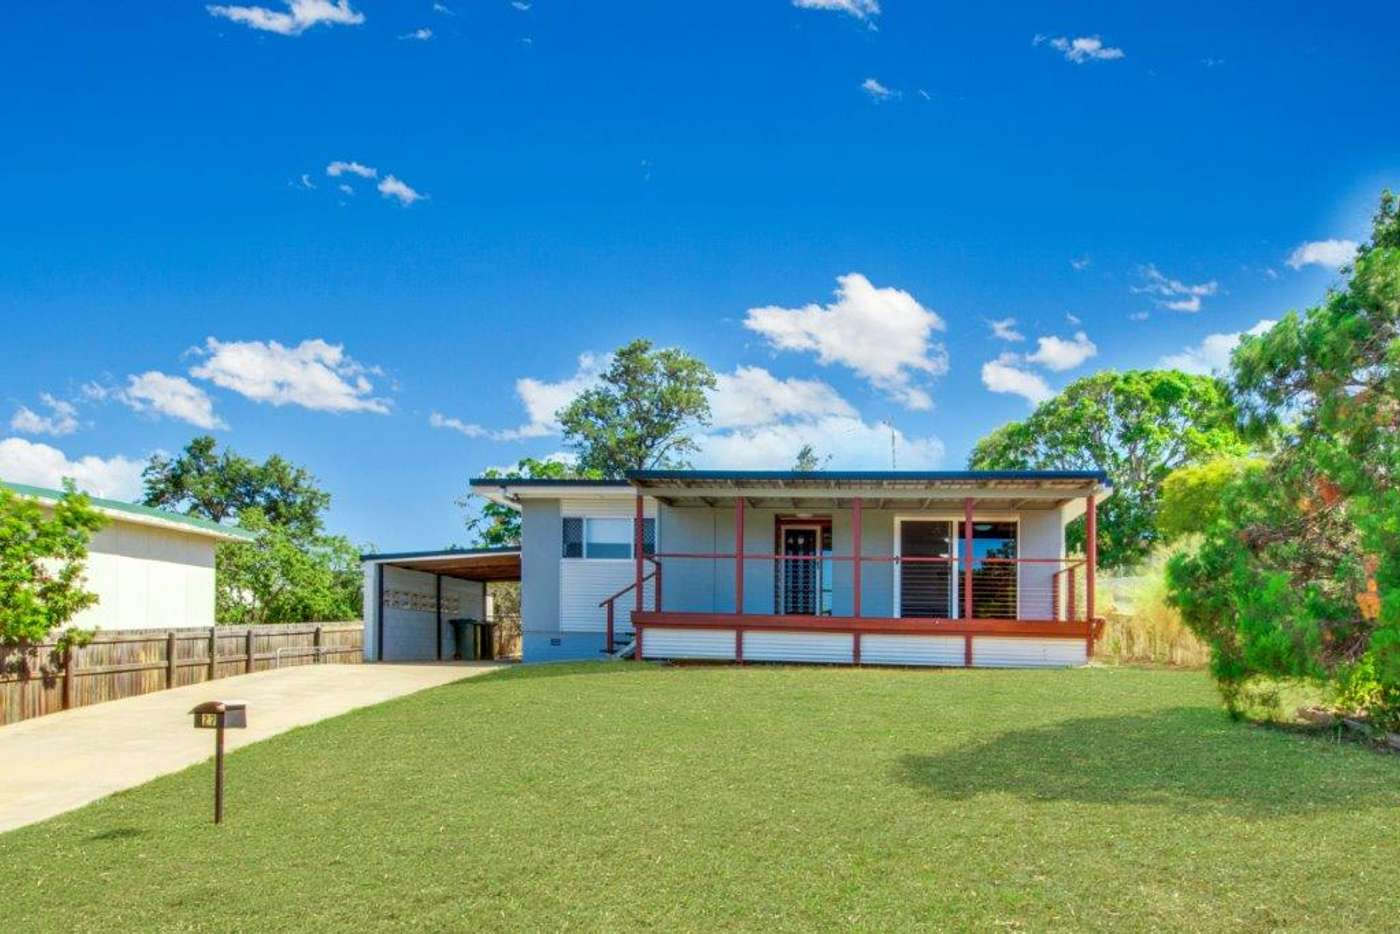 Main view of Homely house listing, 27 Watt Street, West Gladstone QLD 4680